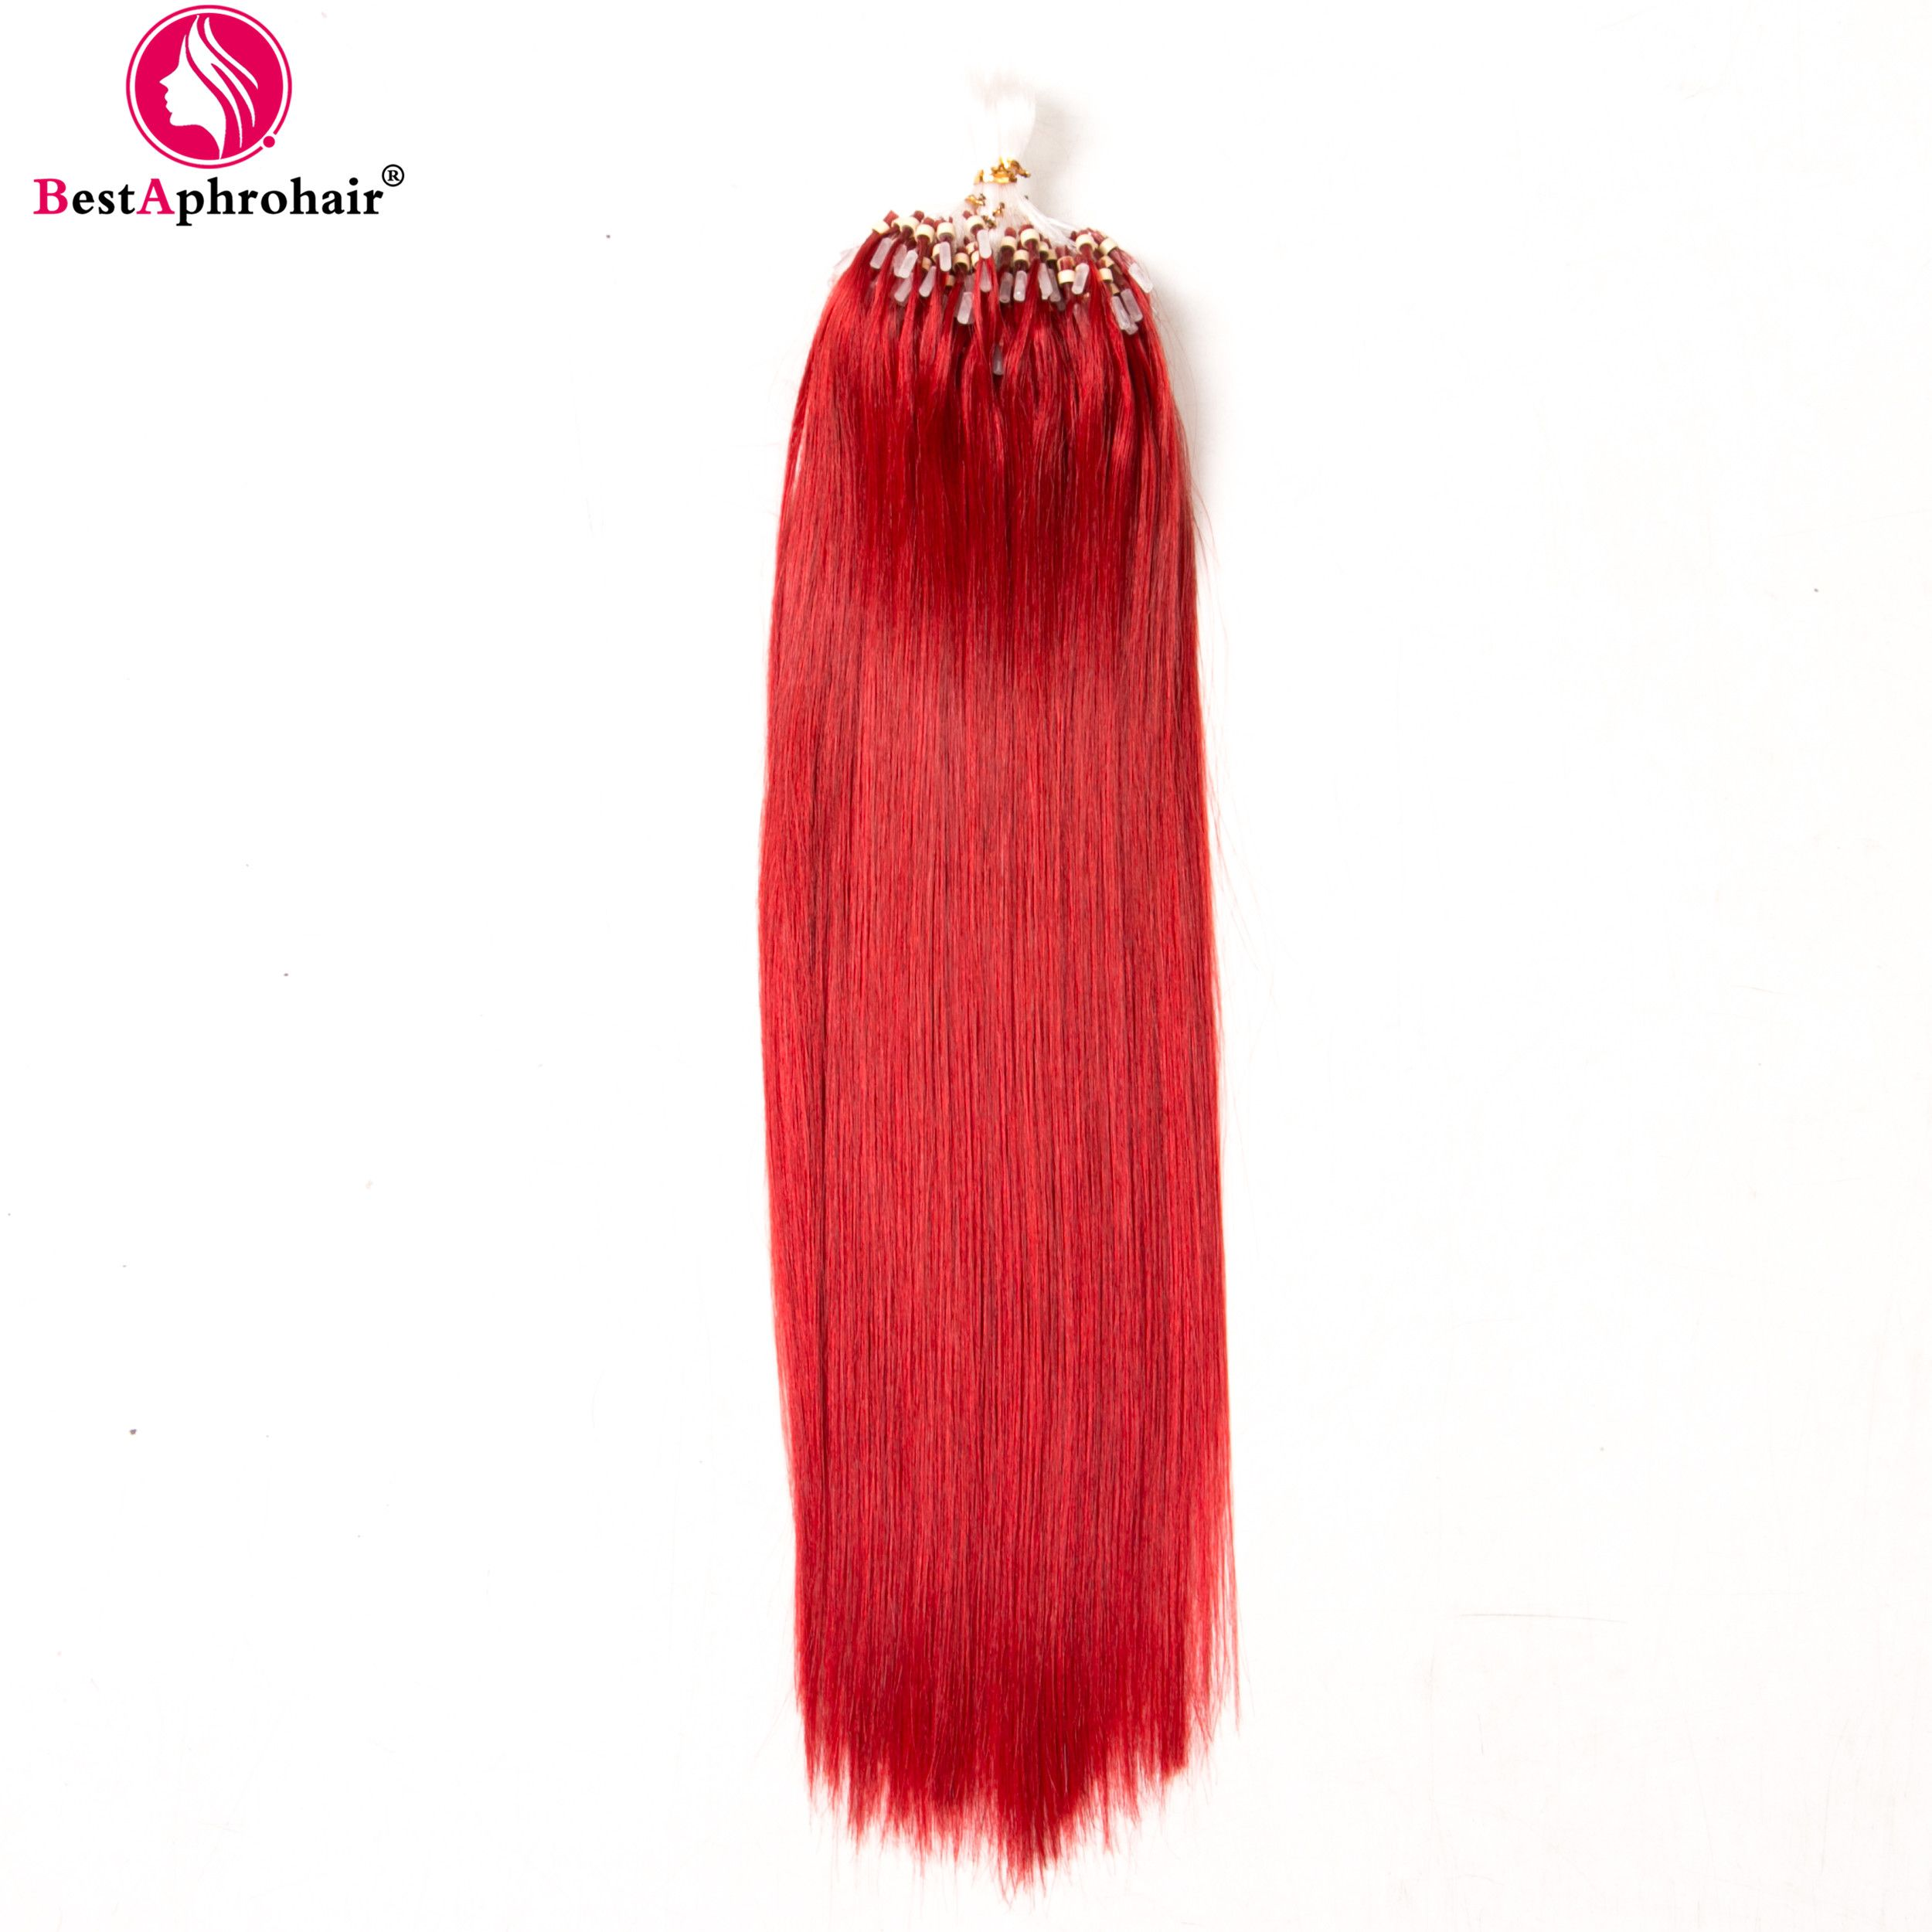 Bestaphrohair Micro Loop Ring Links Human Hair Extensions 05gs 200